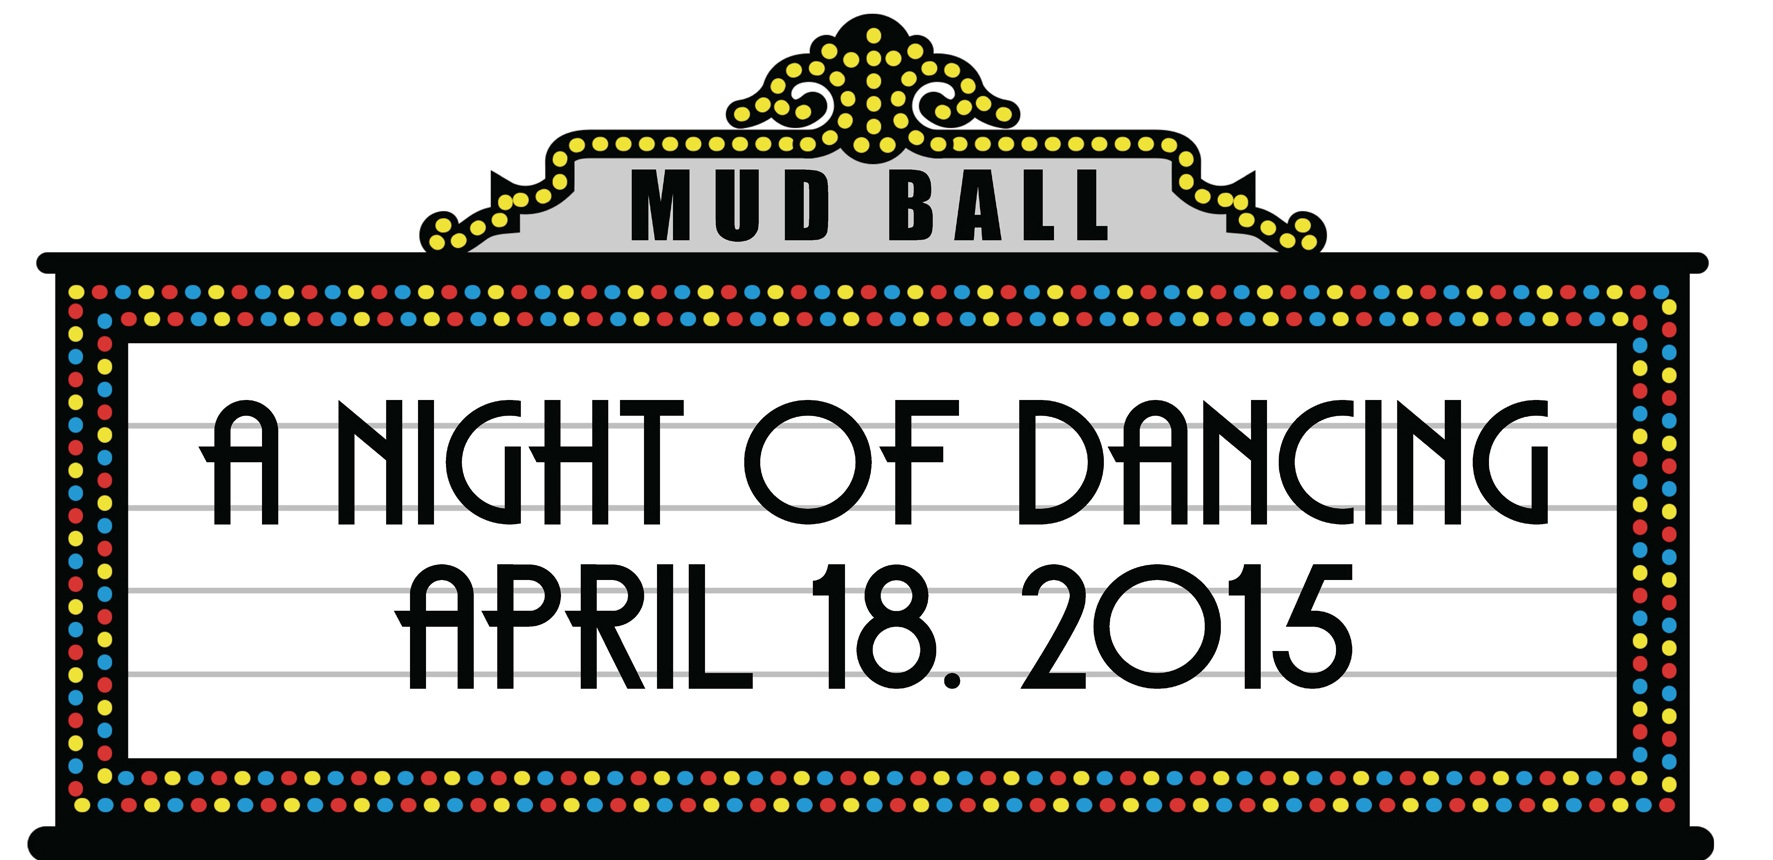 Mb 20a 20night 20of 20dancing 20logo